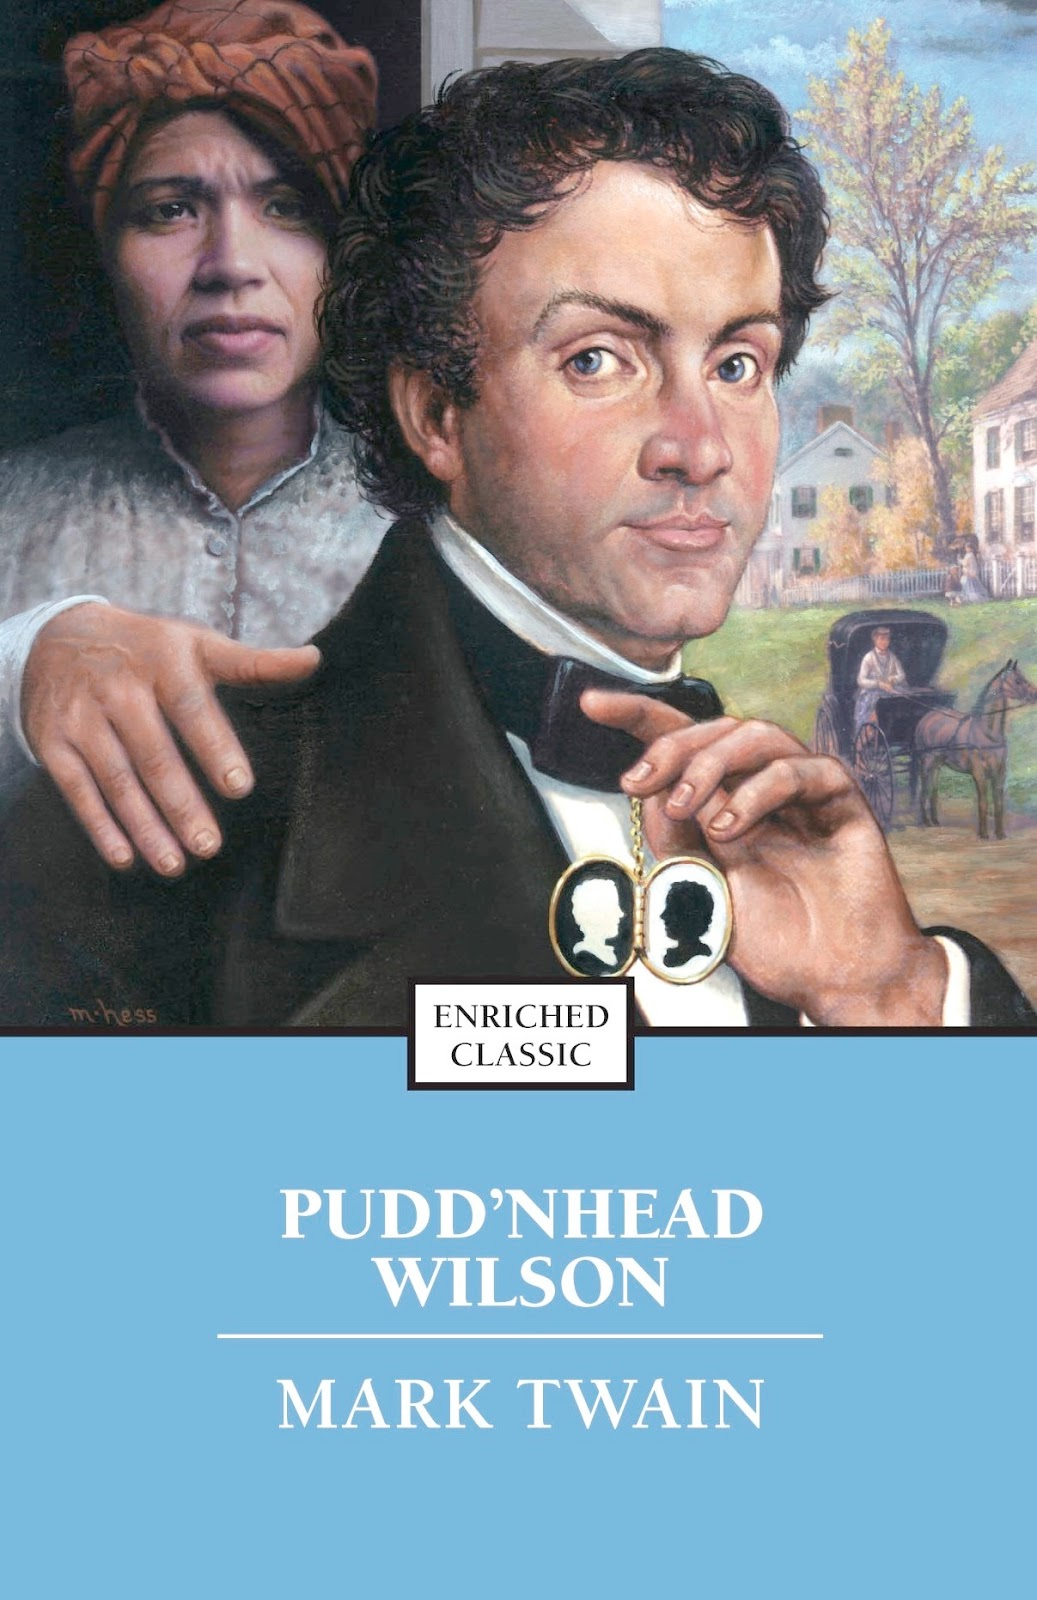 a discussion of whether puddnhead wilson was a real hero Pudd'nhead wilson discussion 4 mark twain 5 pudd'nhead wilson text the bears got more real satisfaction out of the episode than the prophet did.